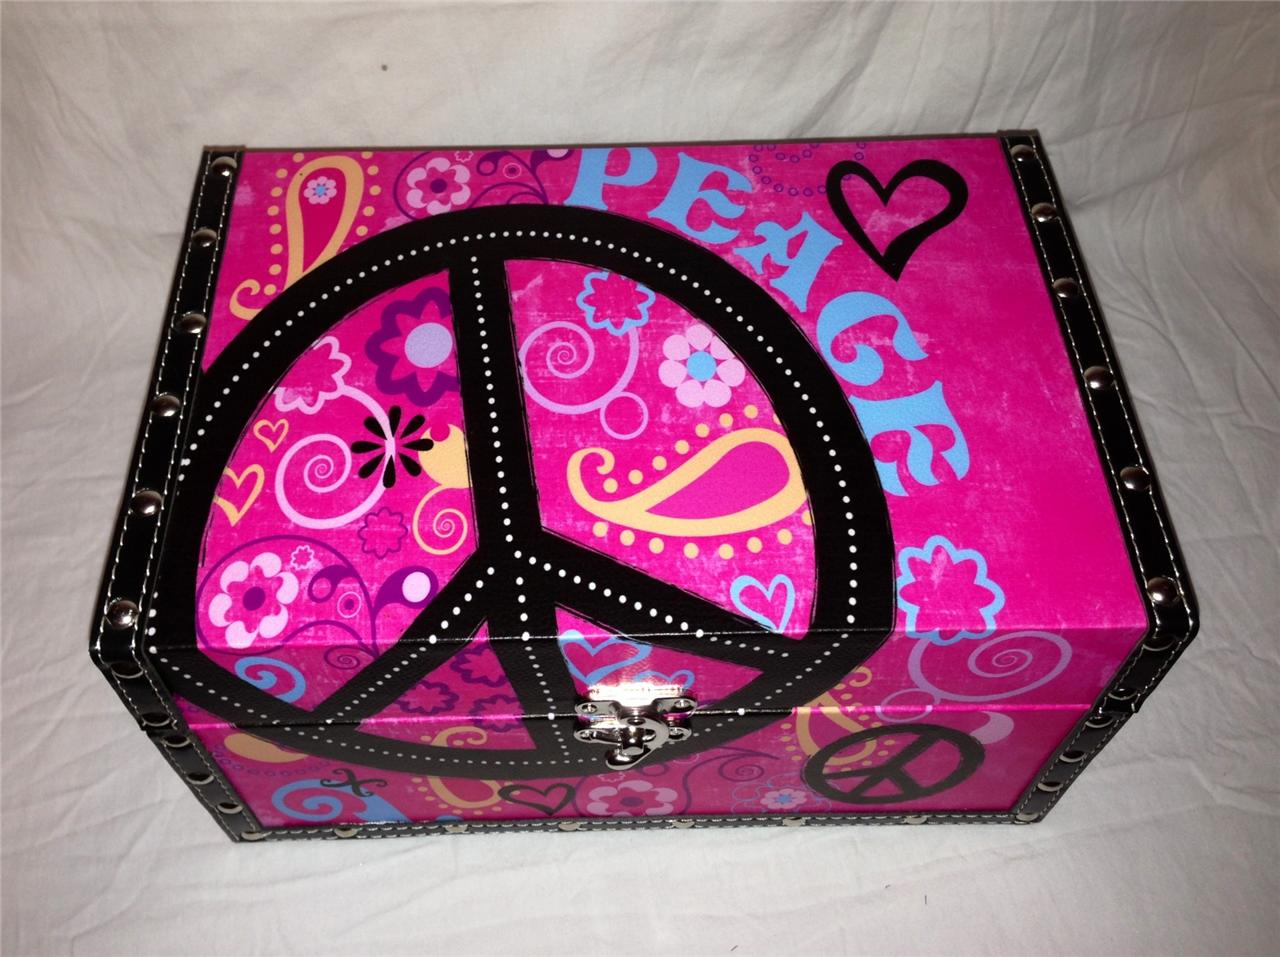 Peace Sign Bedroom Accessories: Rock Star Peace Sign Storage Box Bed Dorm Home Media Room